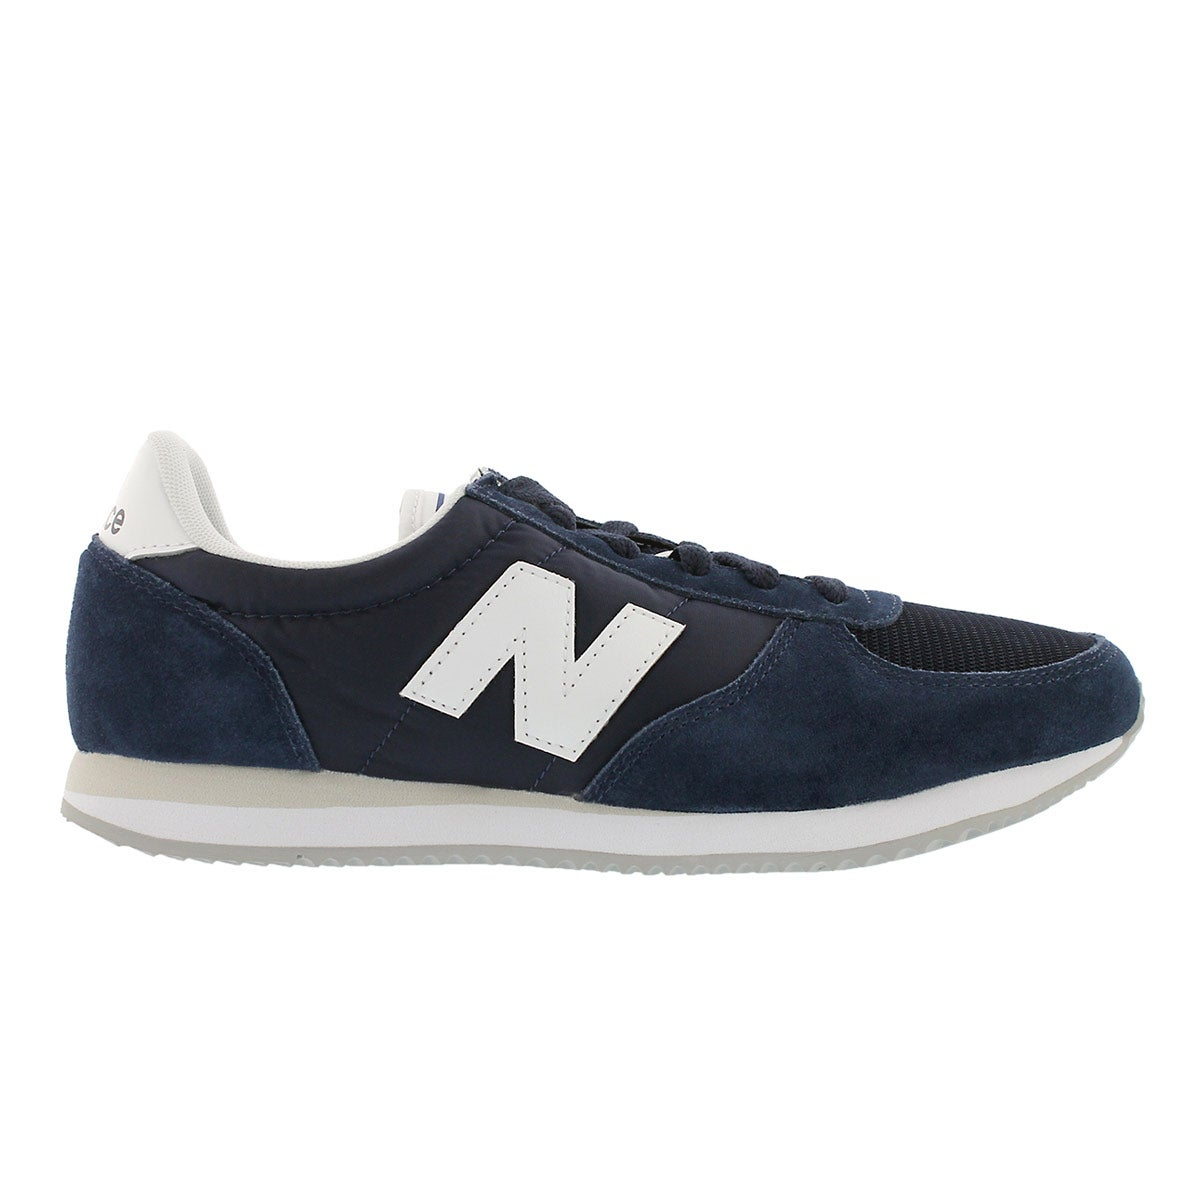 Mns 220 blue/white lace up sneaker